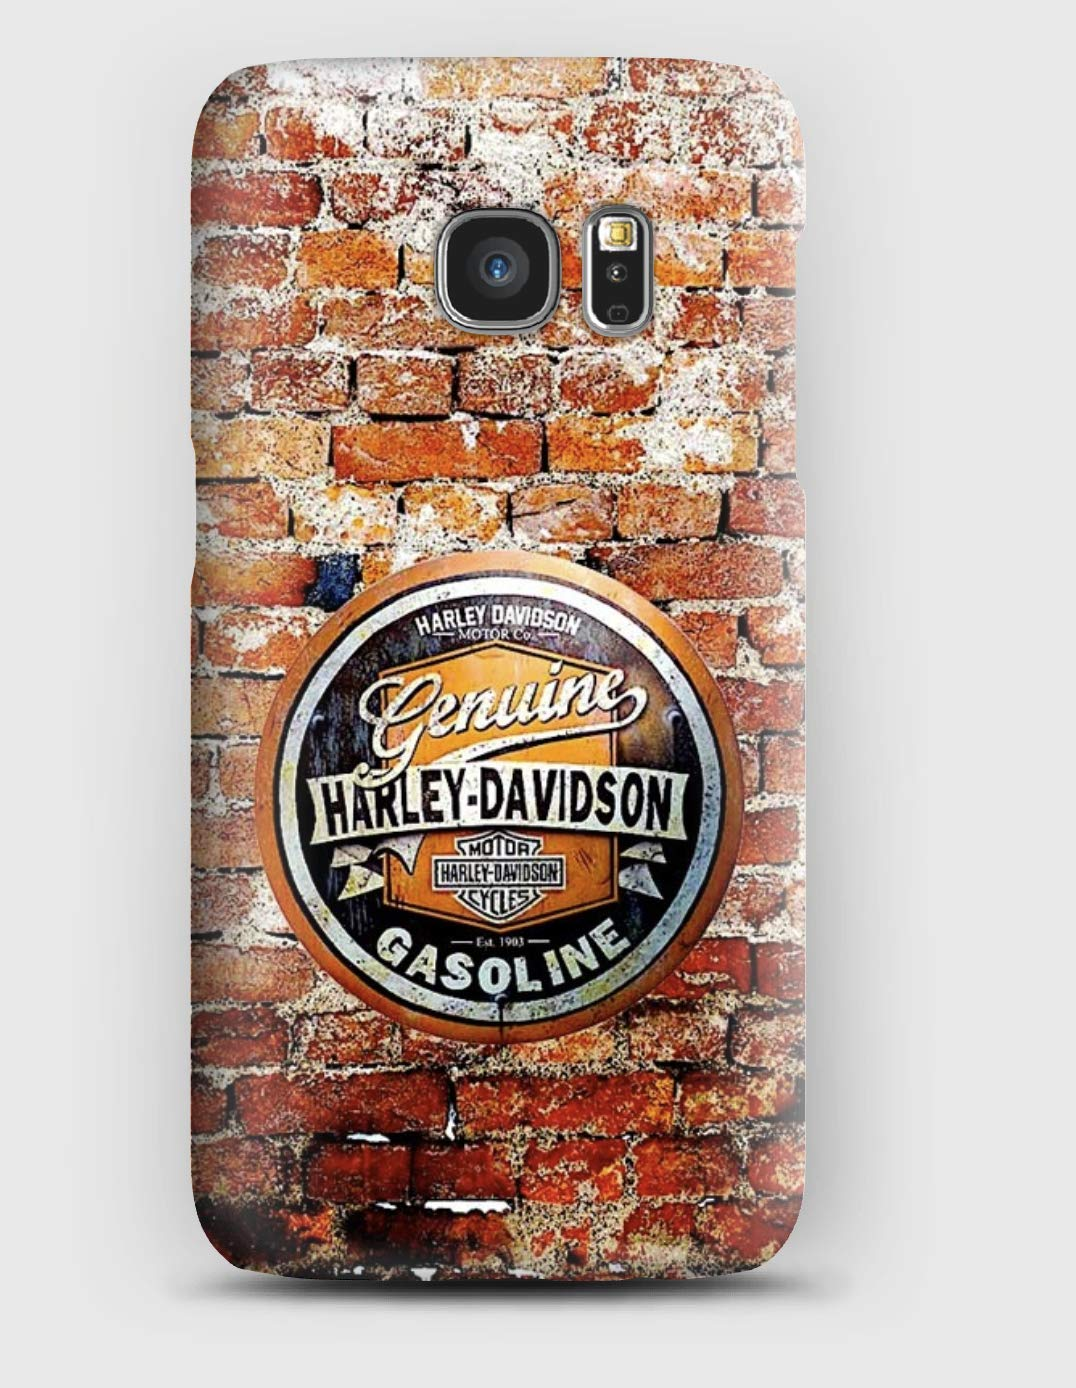 Coque Samsung S5, S6, S7, S8,S9,A3, A5, A7,A8, J3,J5, Note 4,5,8,9, Grand prime, Route 66